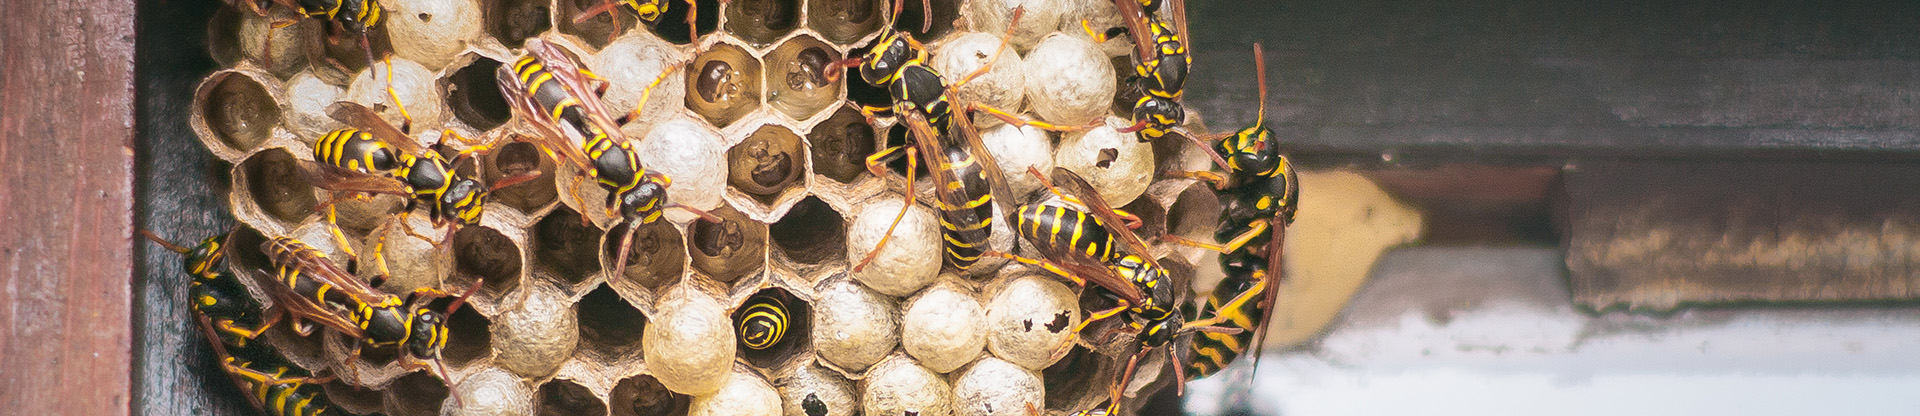 residential and commercial pest control for wasps